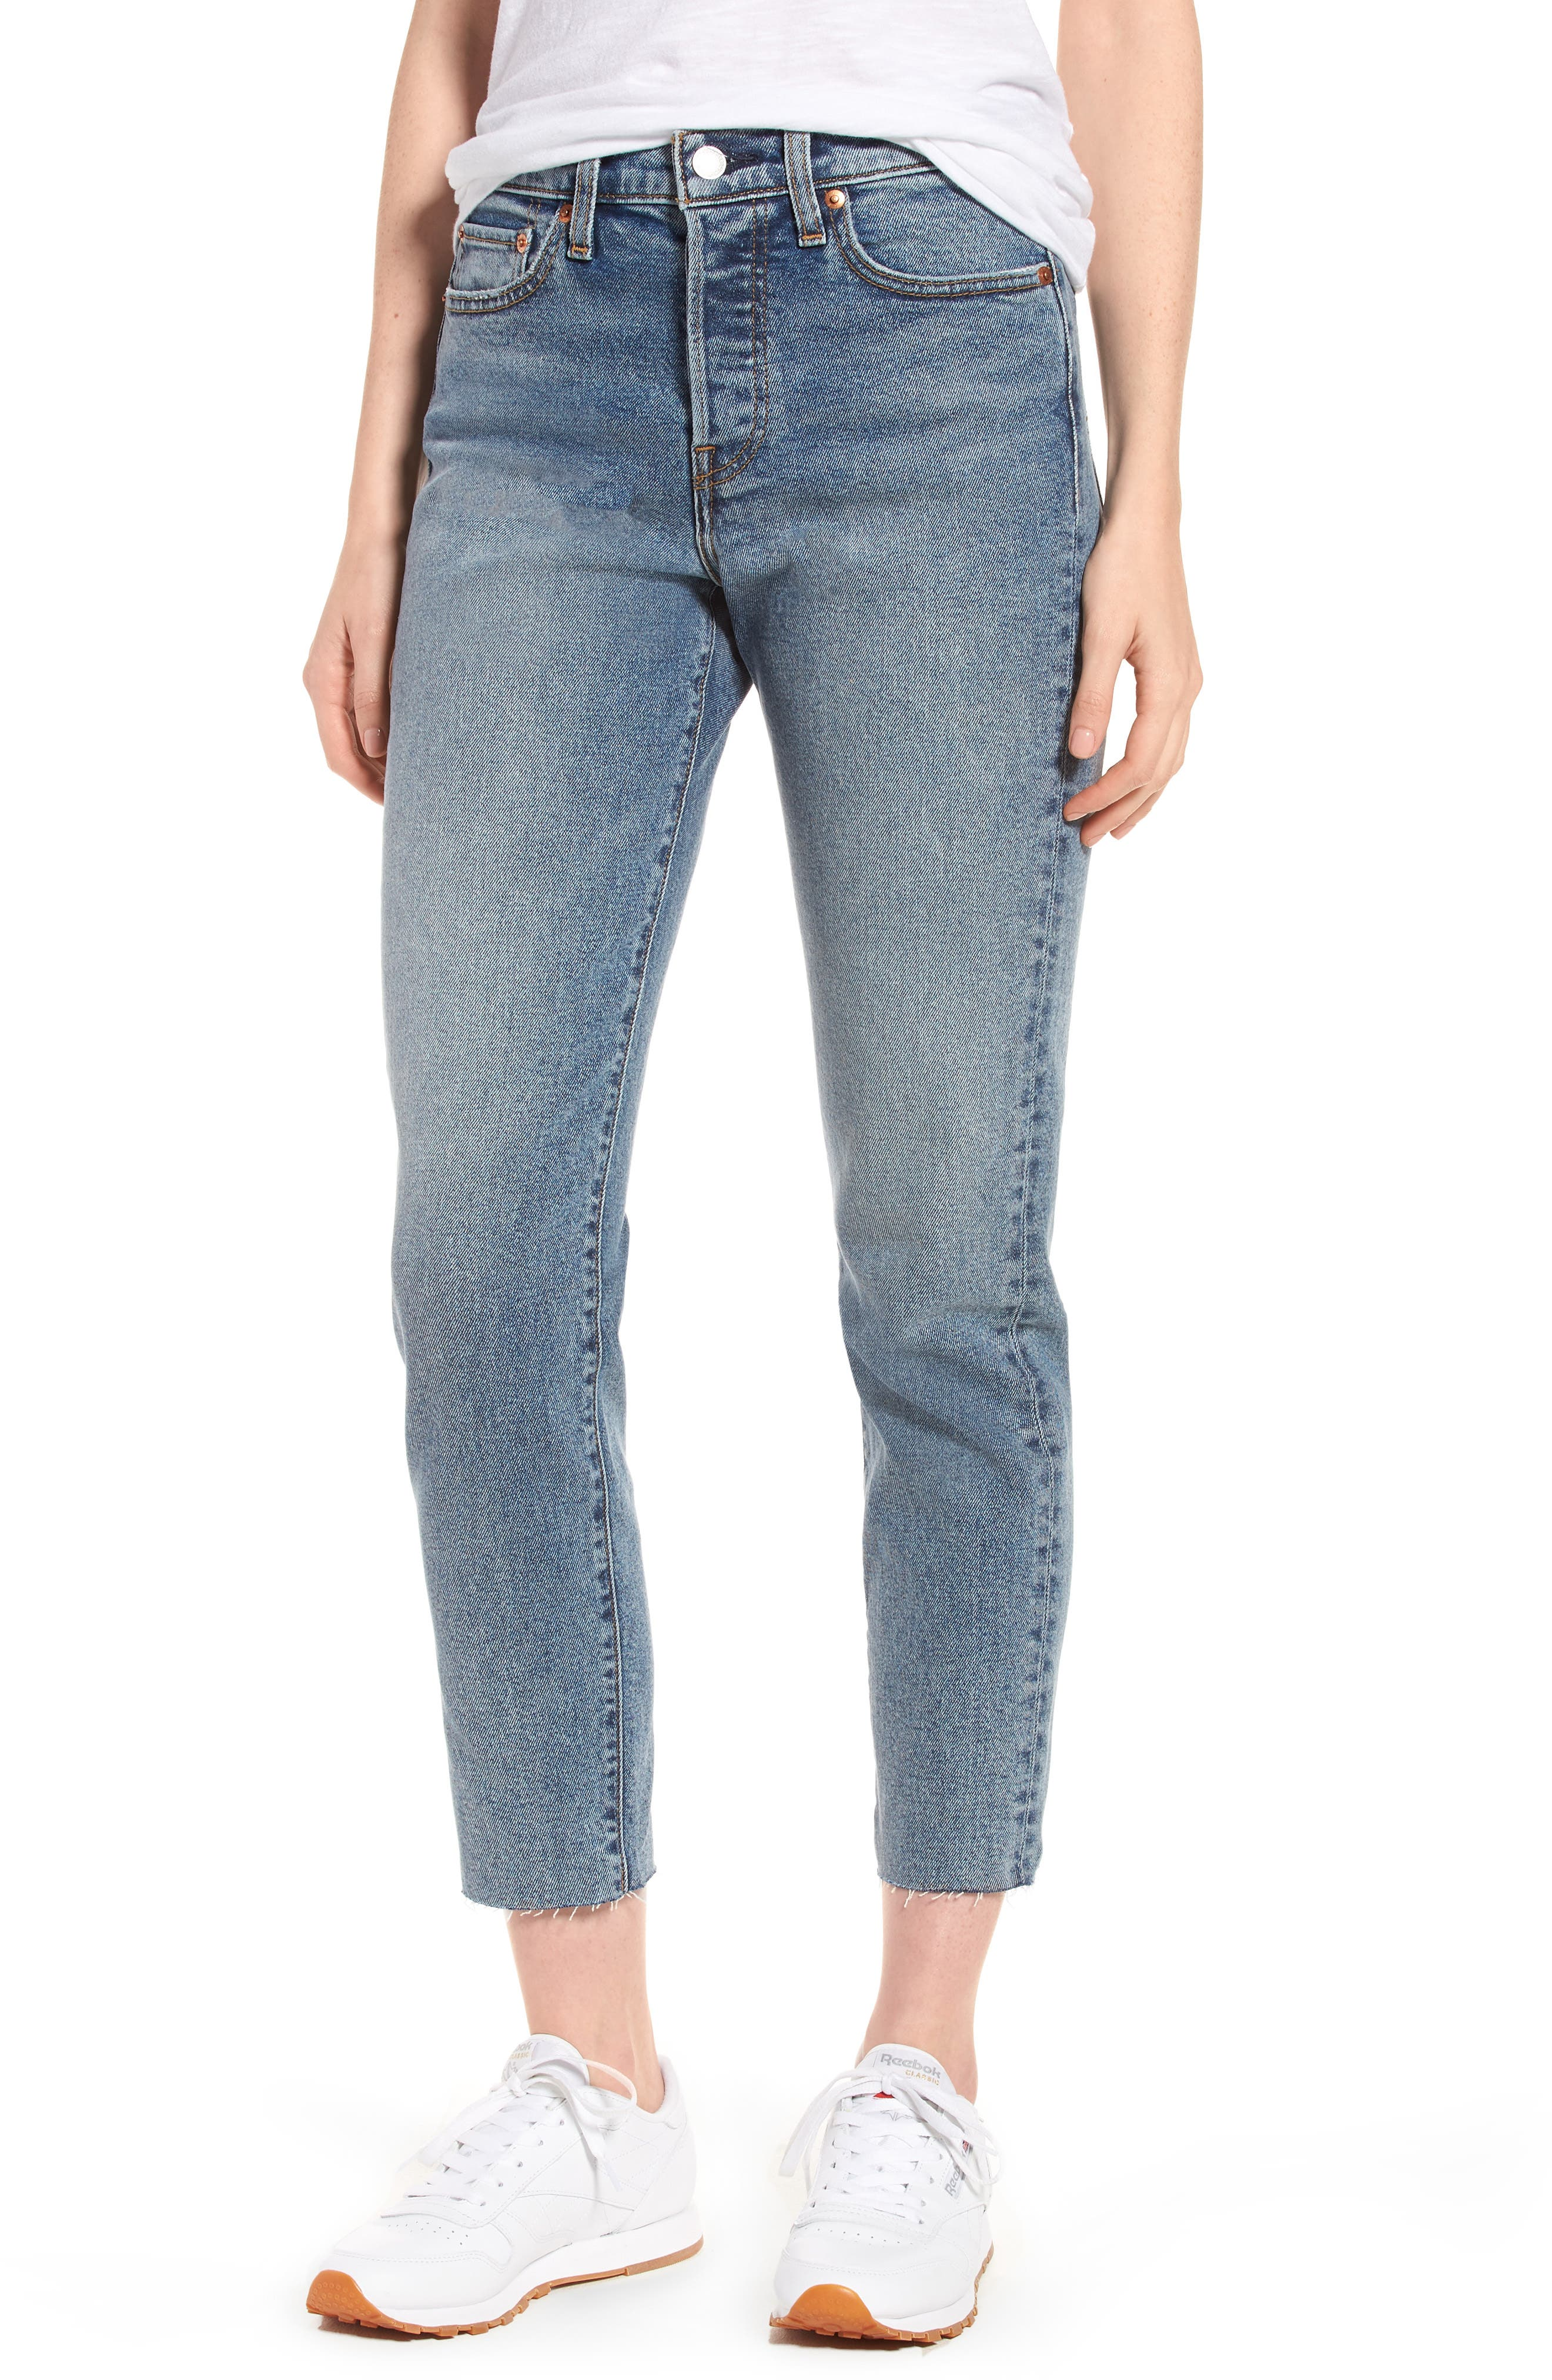 Wedgie Icon Fit High Waist Crop Jeans,                         Main,                         color, Twisted Fate